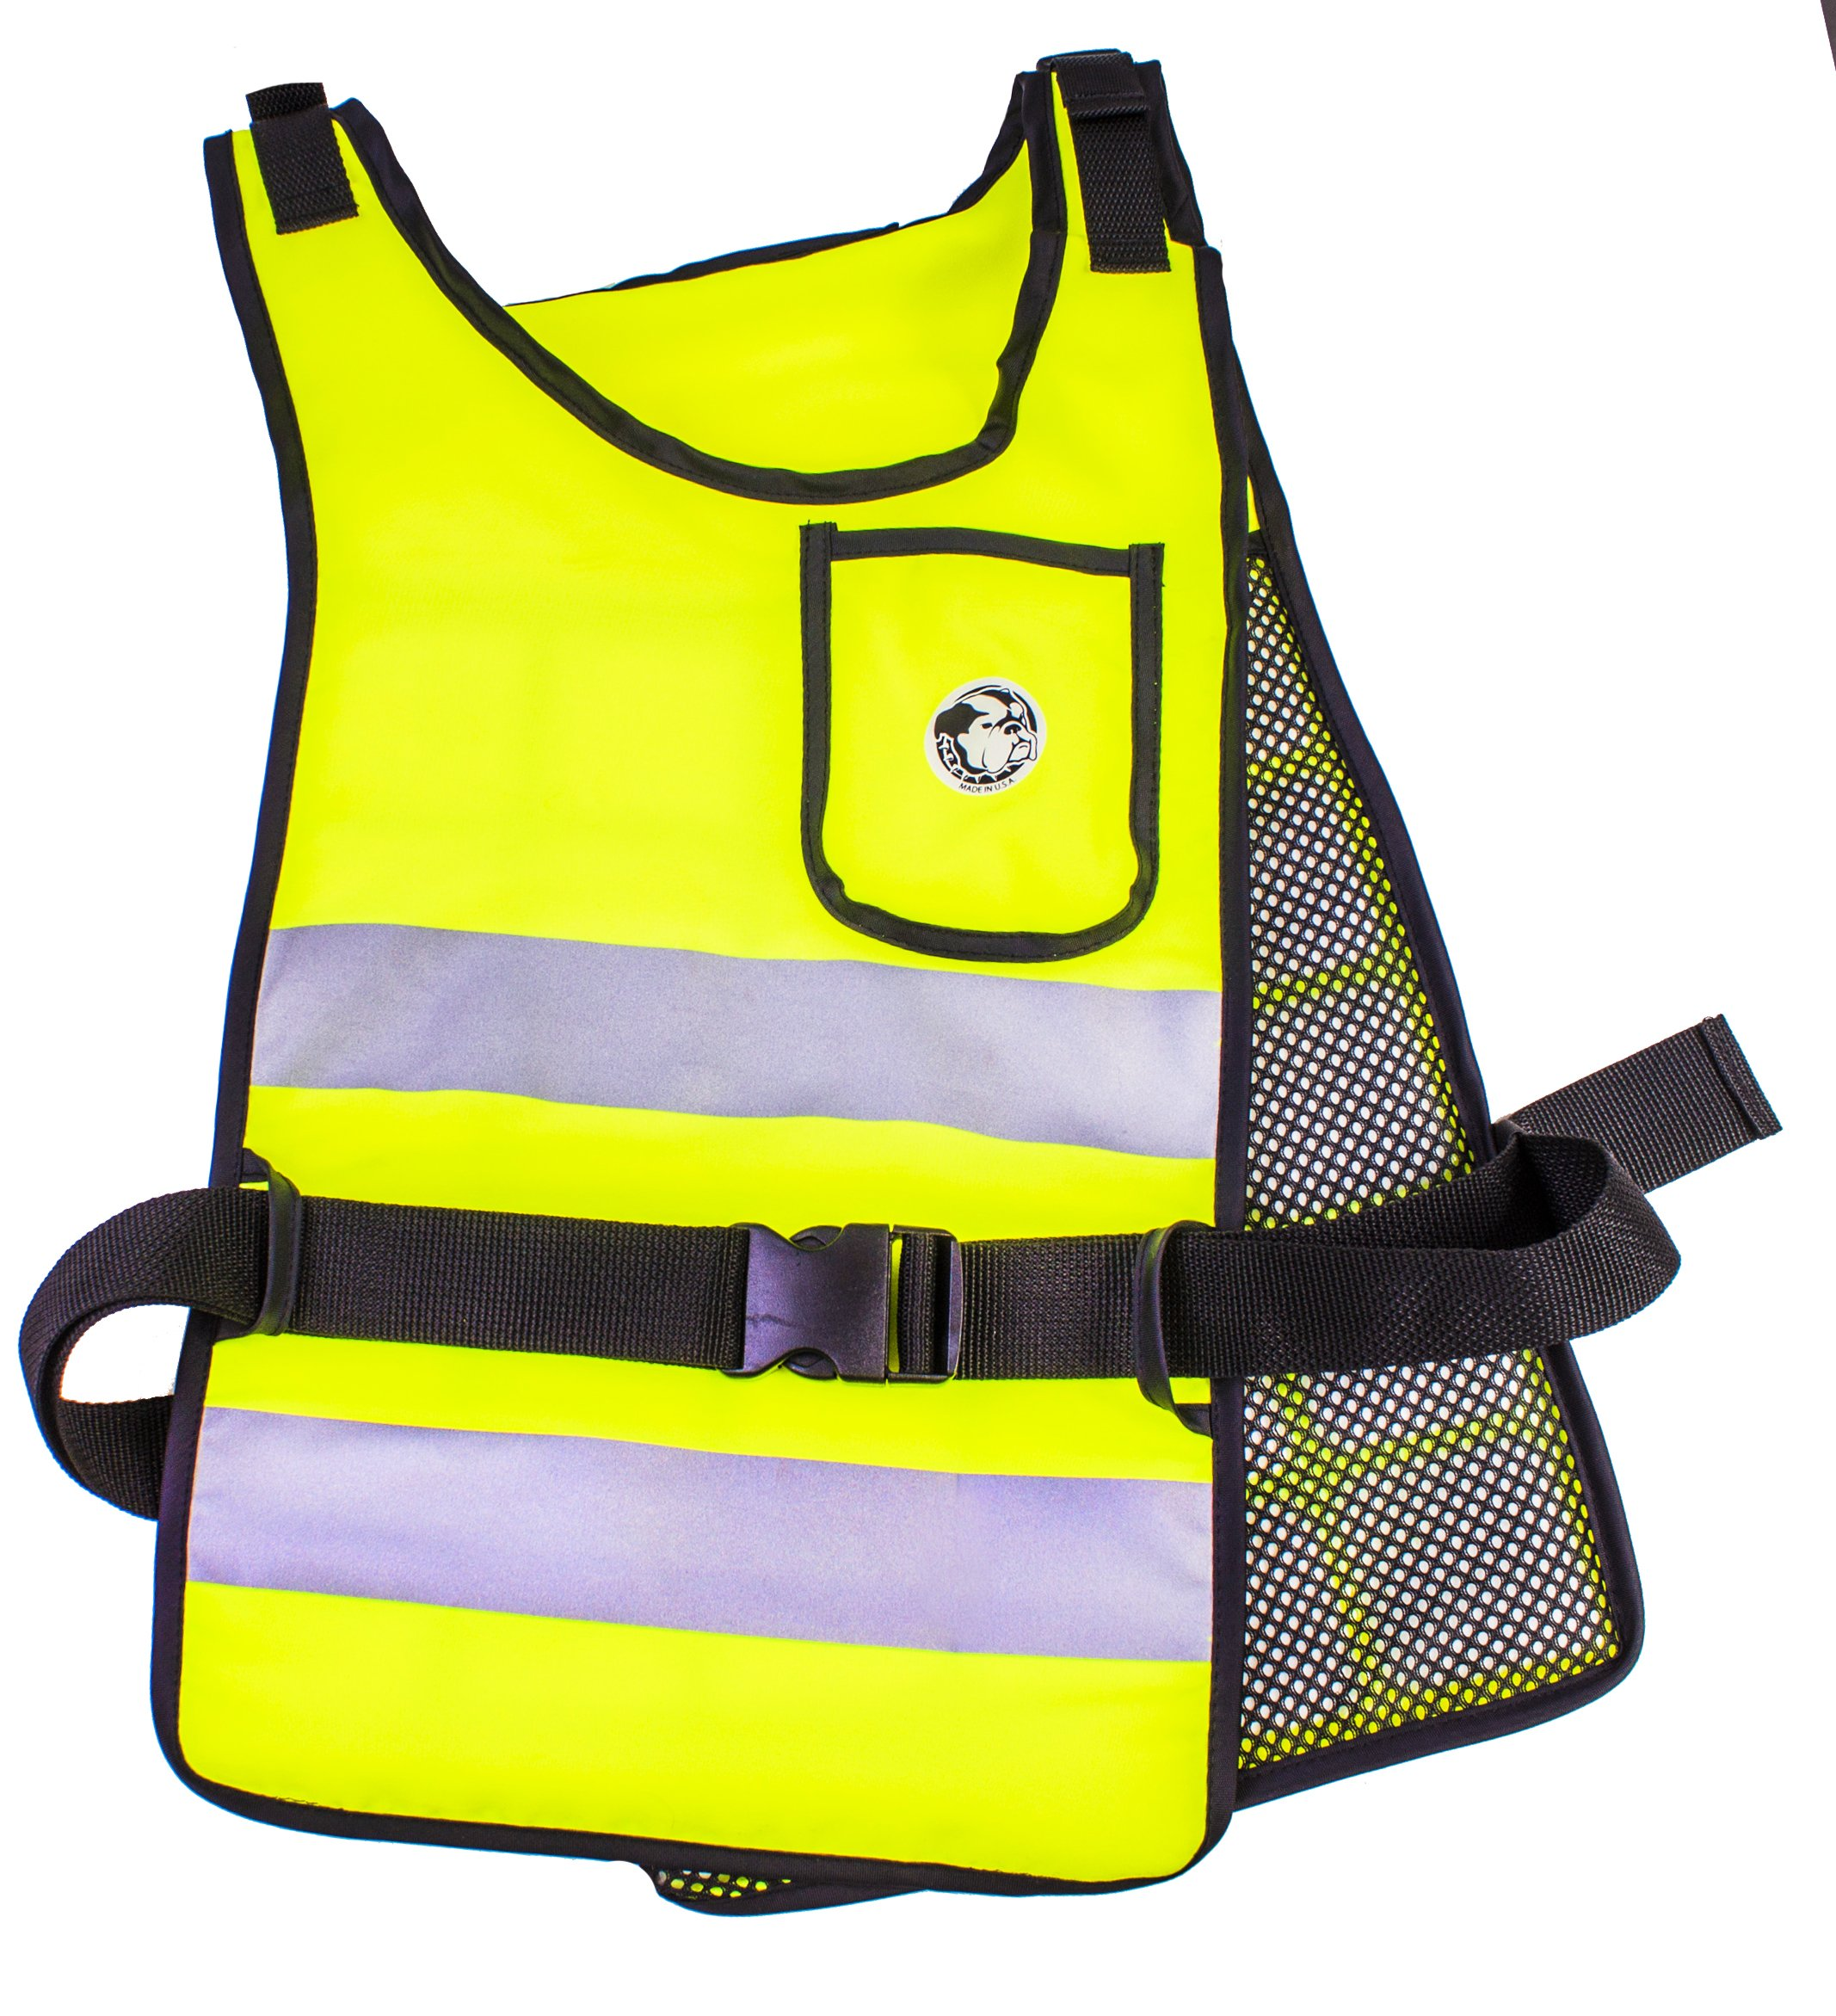 Reflective High Vis Lime AllTuff Super Cool Vest (58°F)